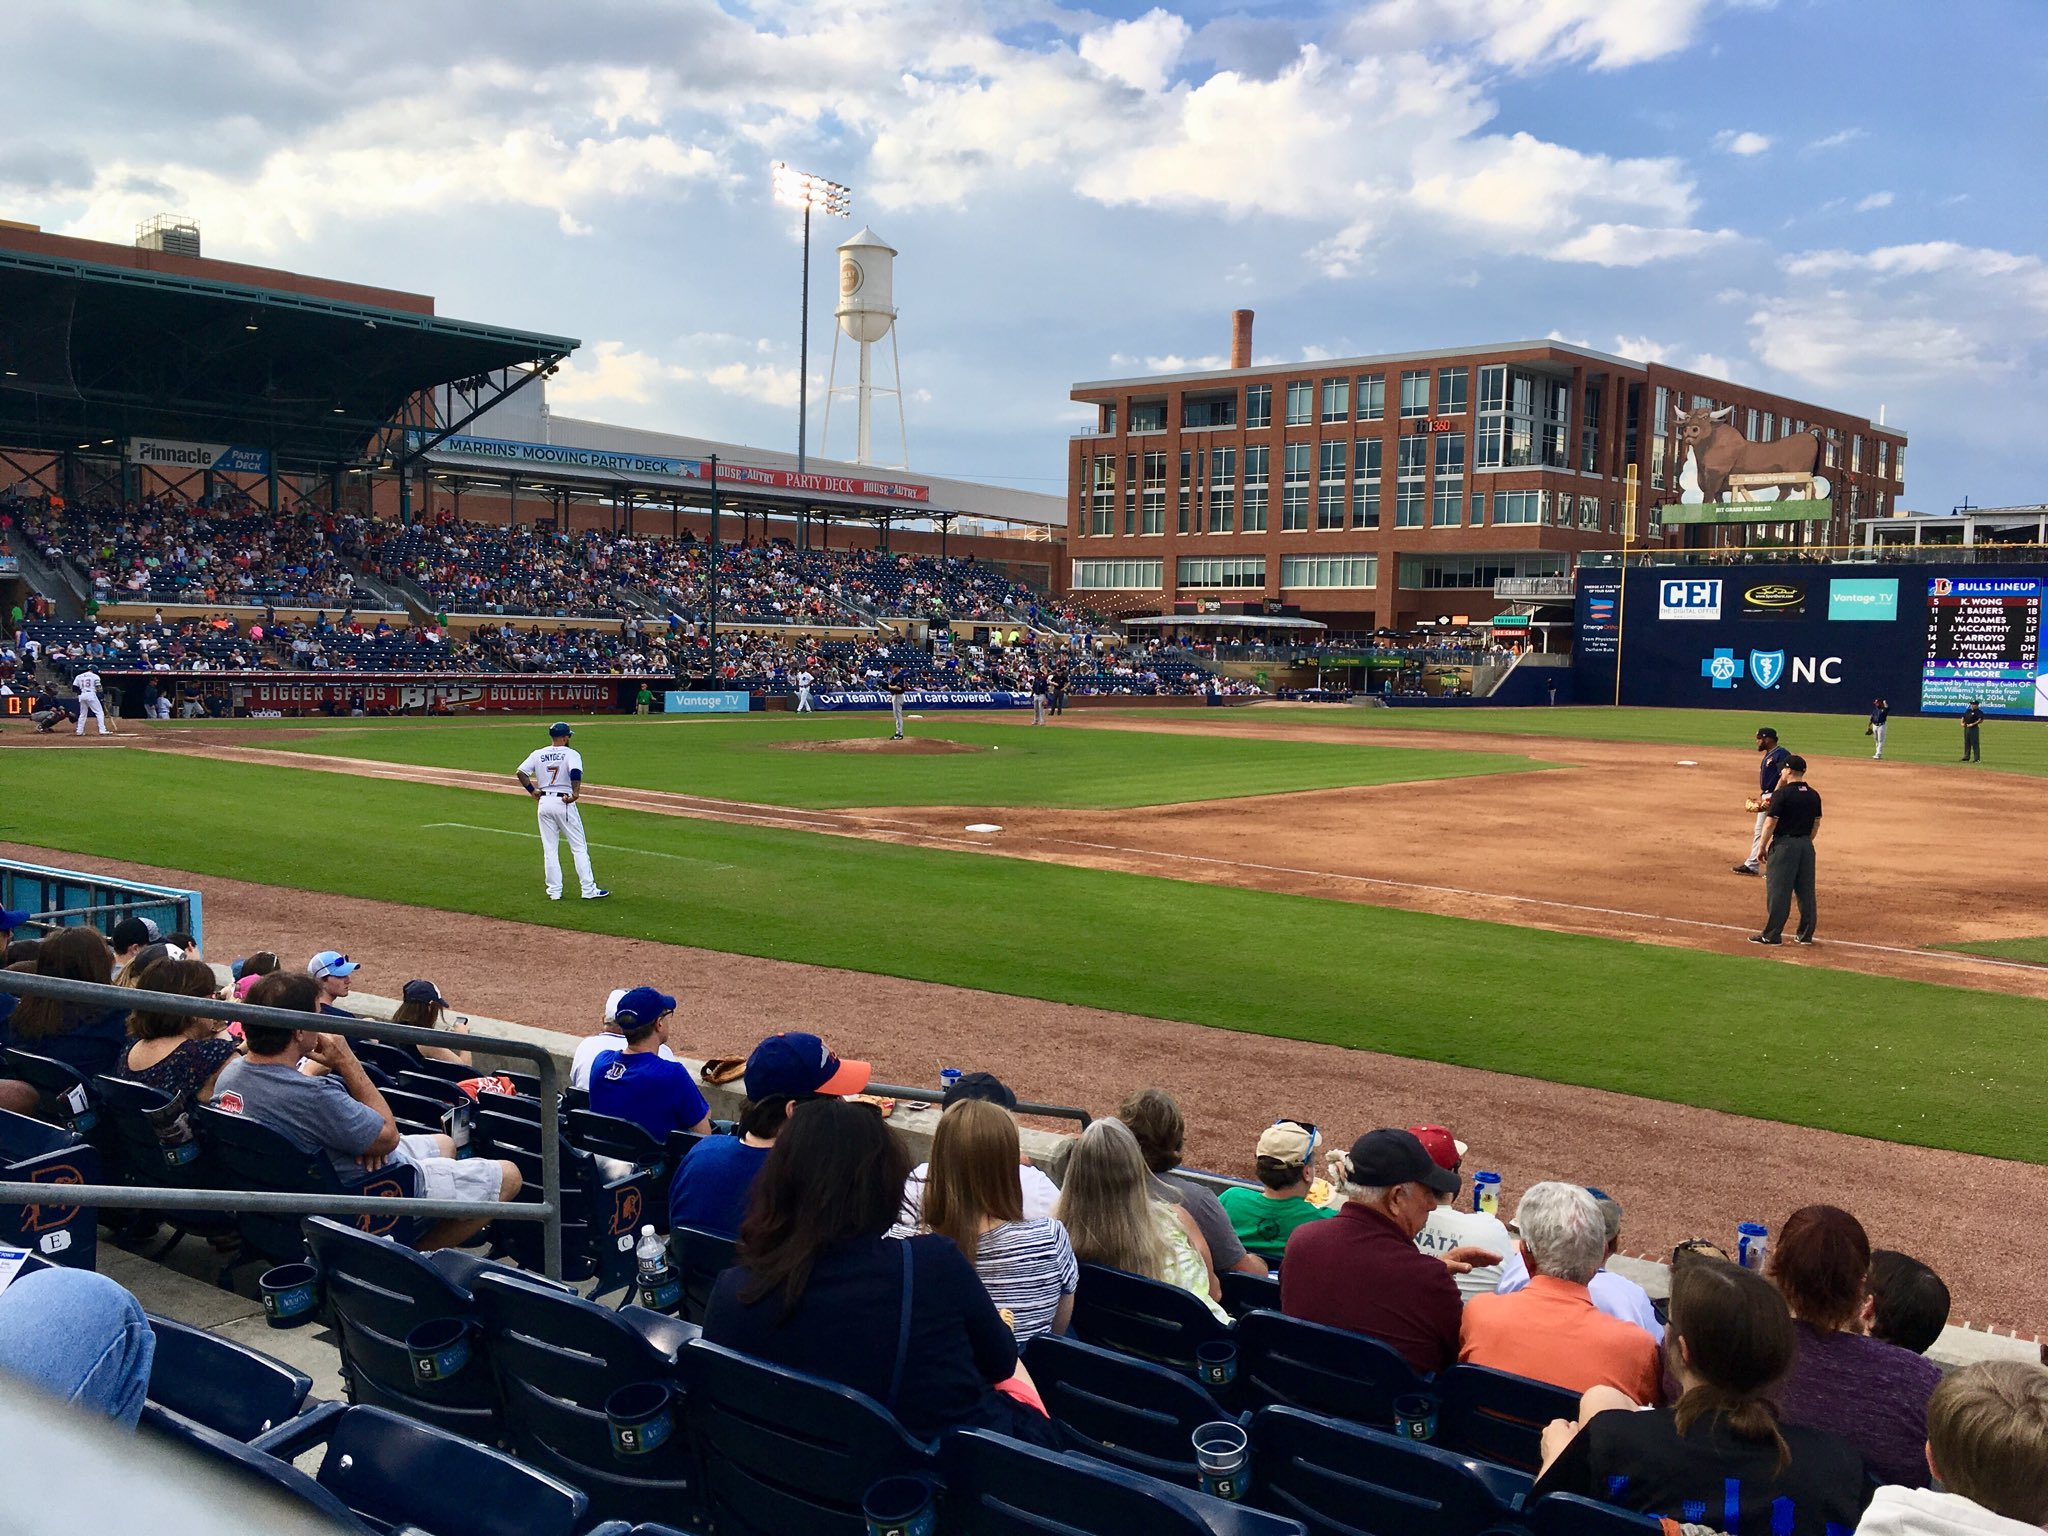 Sundays at the DBAP > https://t.co/APJ7nKPvQz